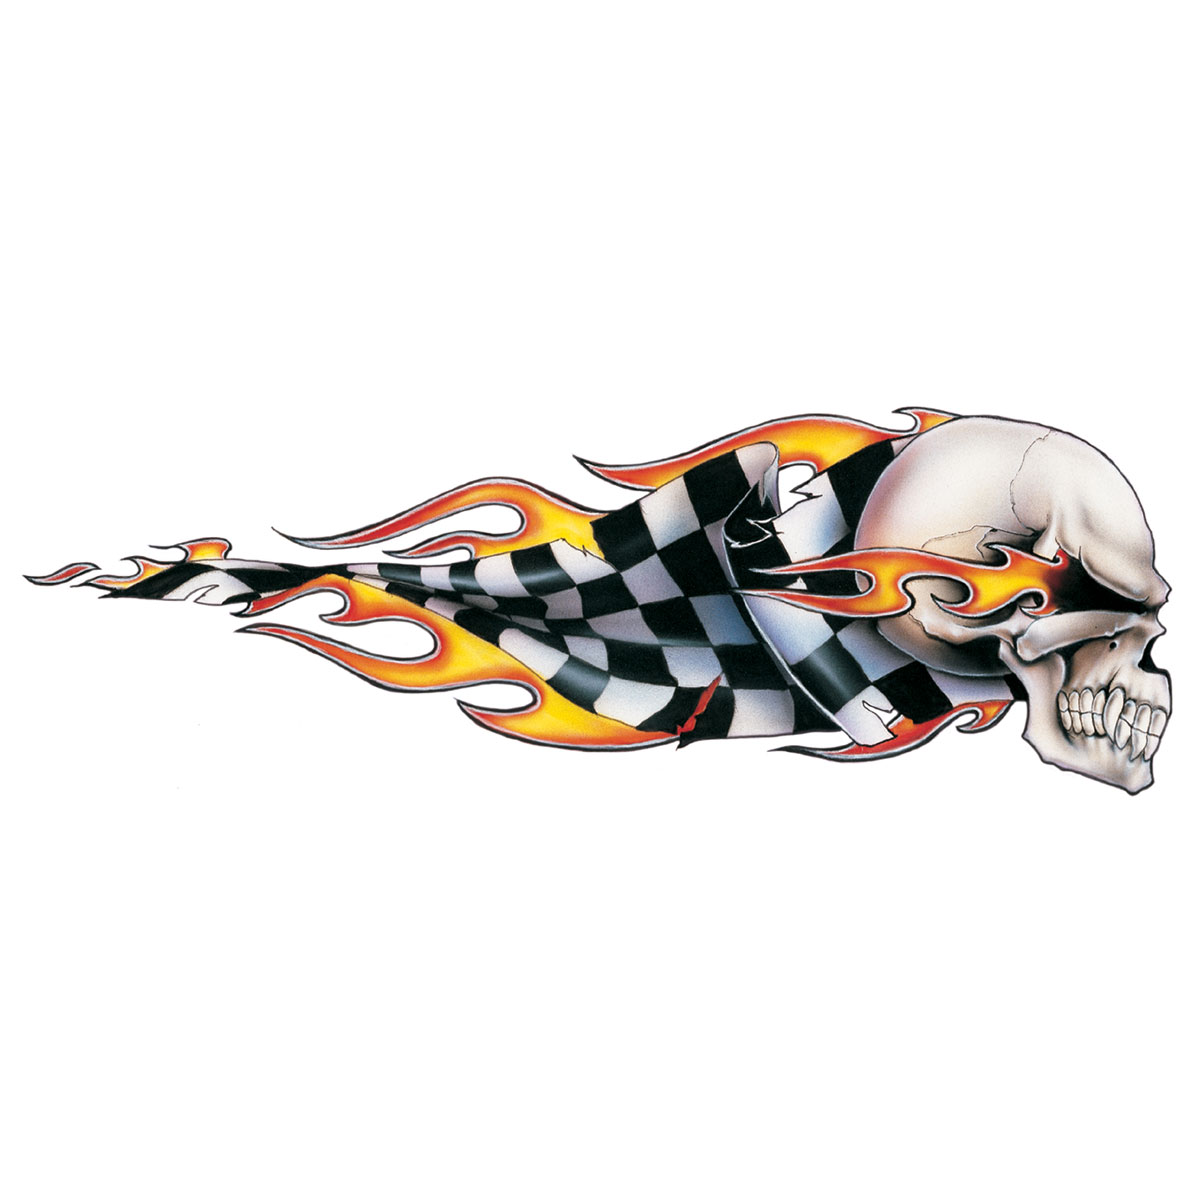 Lethal Threat Checkered Skull Decal - Right